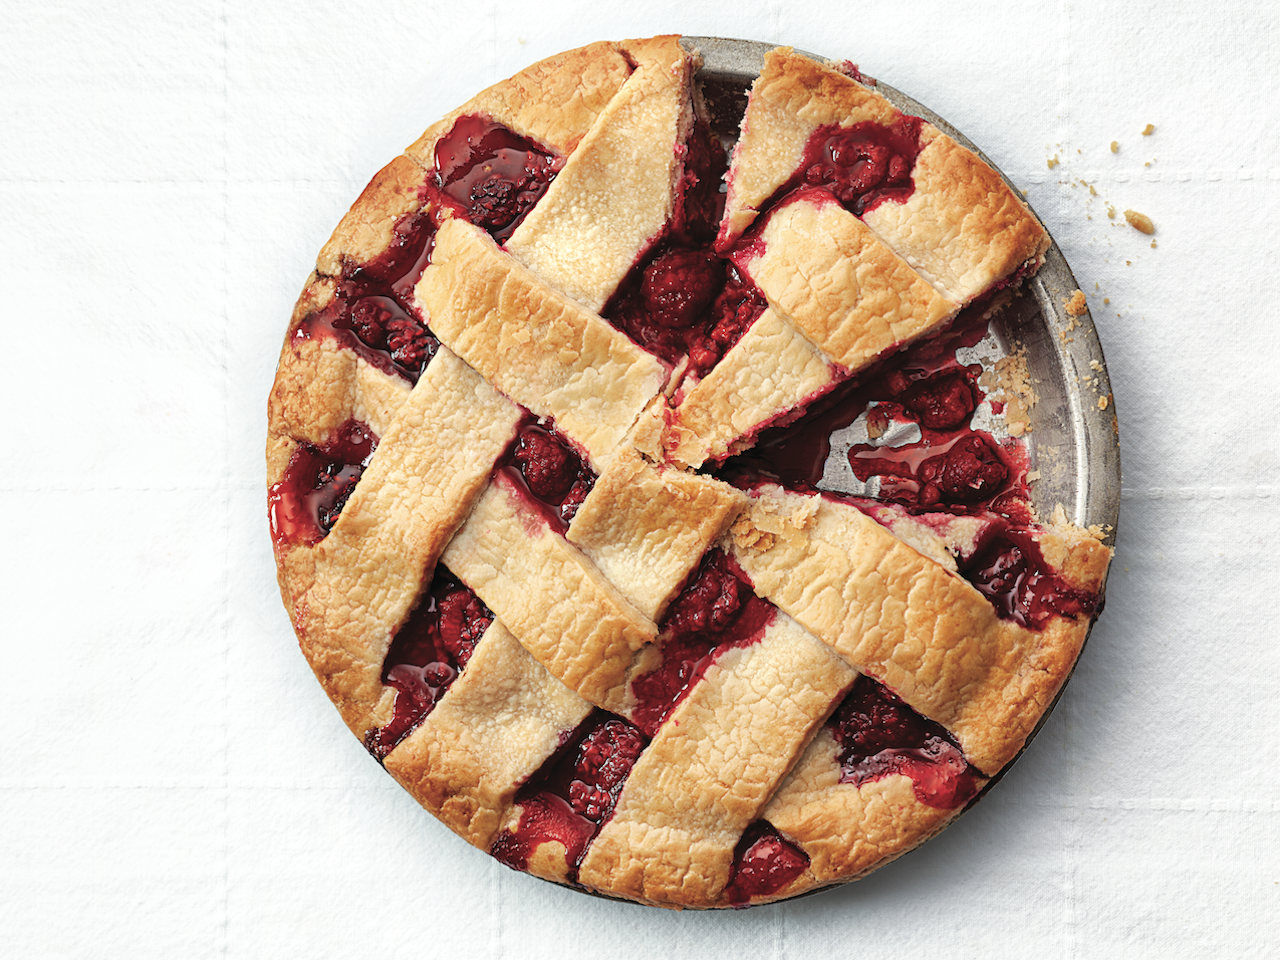 Summer pies: Raspberry lattice pie